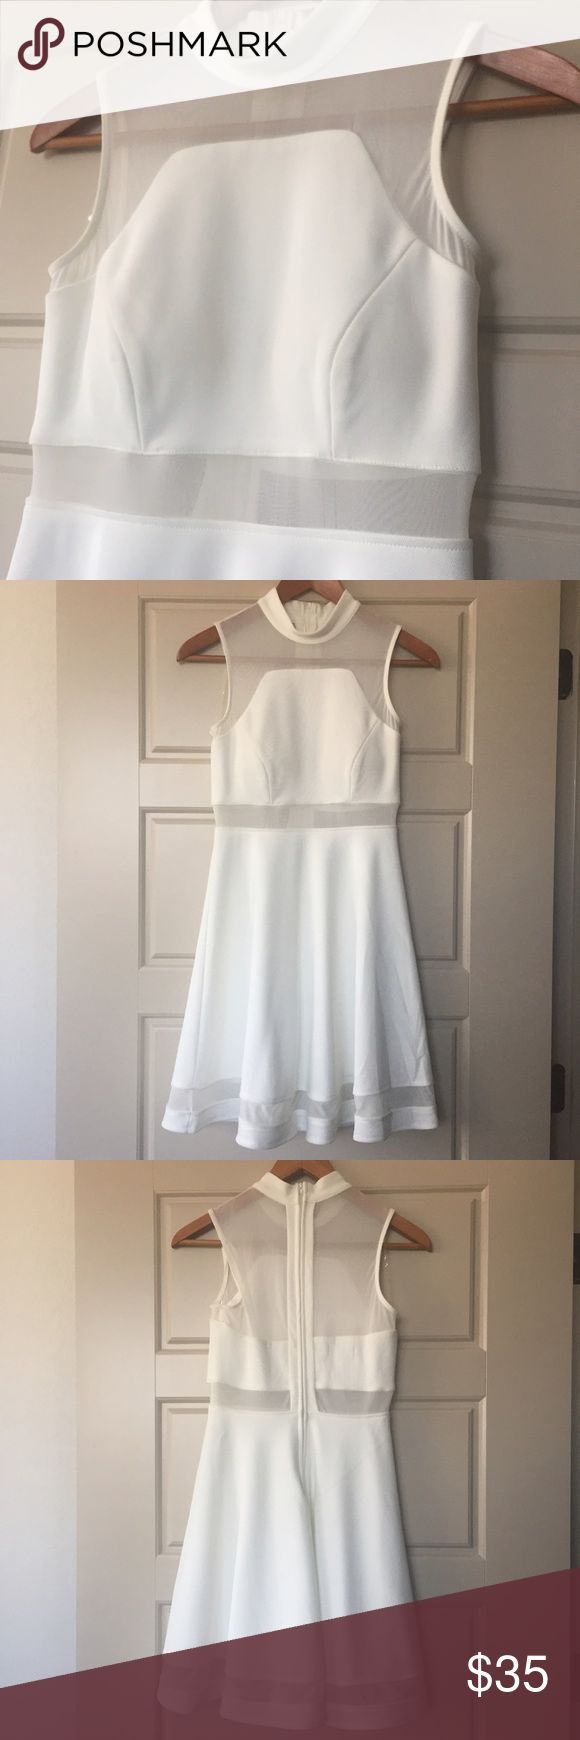 ✨🎉HP 1/6/2017 🎉✨ NORDSTROM White A-line Dress, S White A-line Dress, Size S. Pretty sleeveless white dress with sheer white mesh in just the right places adds a little edge to this classy and demure dress with a full A-line skirt. Features padded cups so don't need a bra. Has a light yellowish stain on the inside near hem on the back, reflective of price (see photo). Purchased from Nordstrom. Nordstrom Dresses